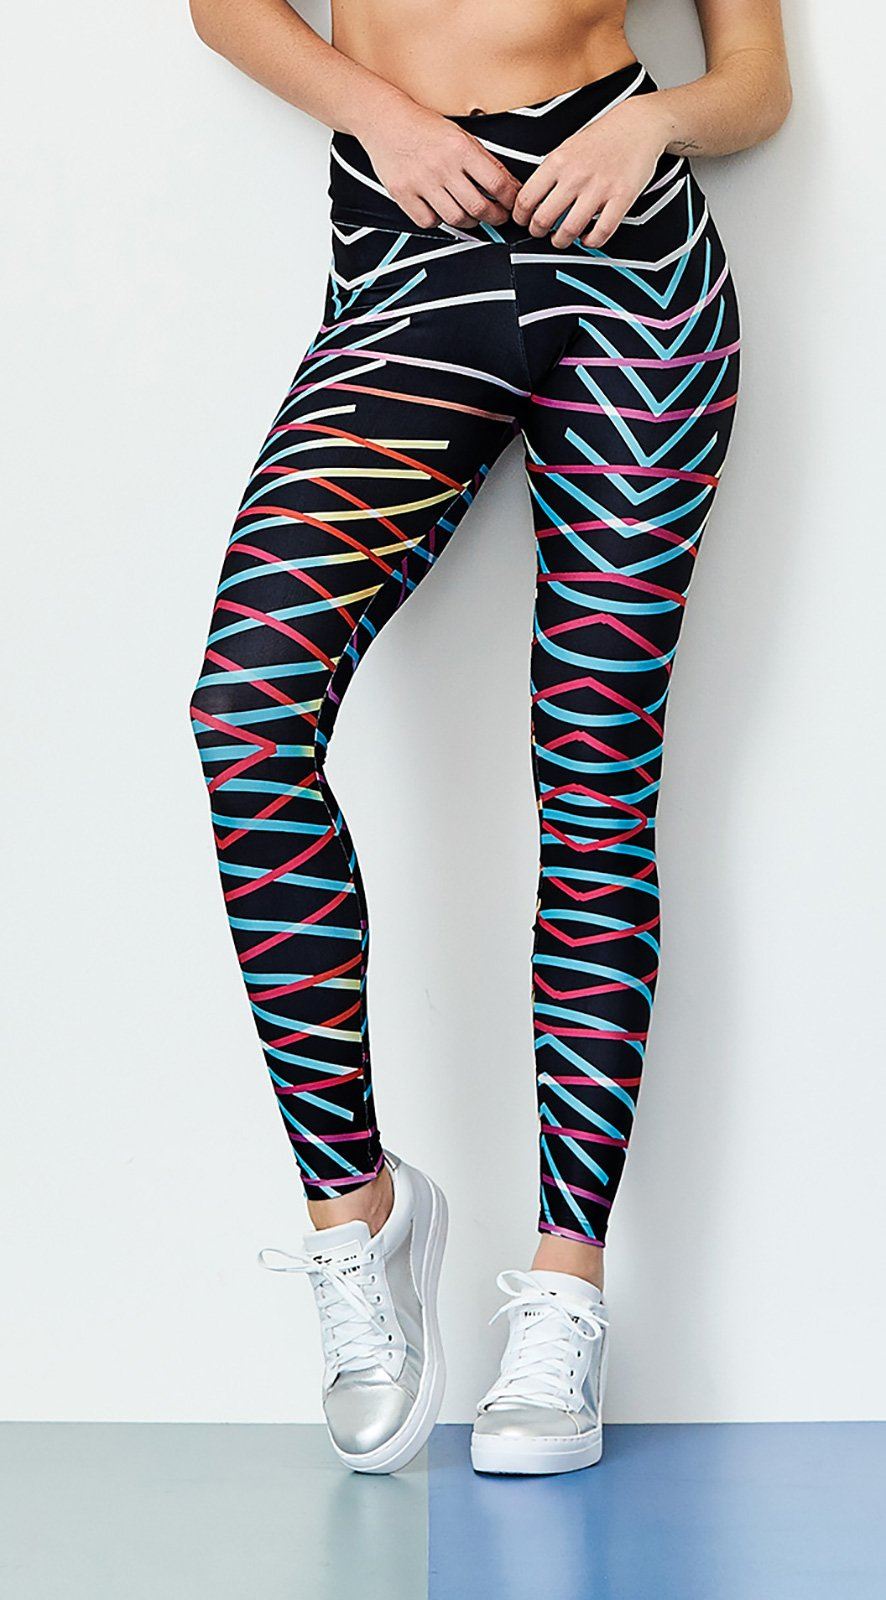 Yoga leggings can be used in the gym Pilates studio, outdoor sports and daily leisure places, Shift from casual to dressy in minutes. Highlight your favorite accessories /5(16).